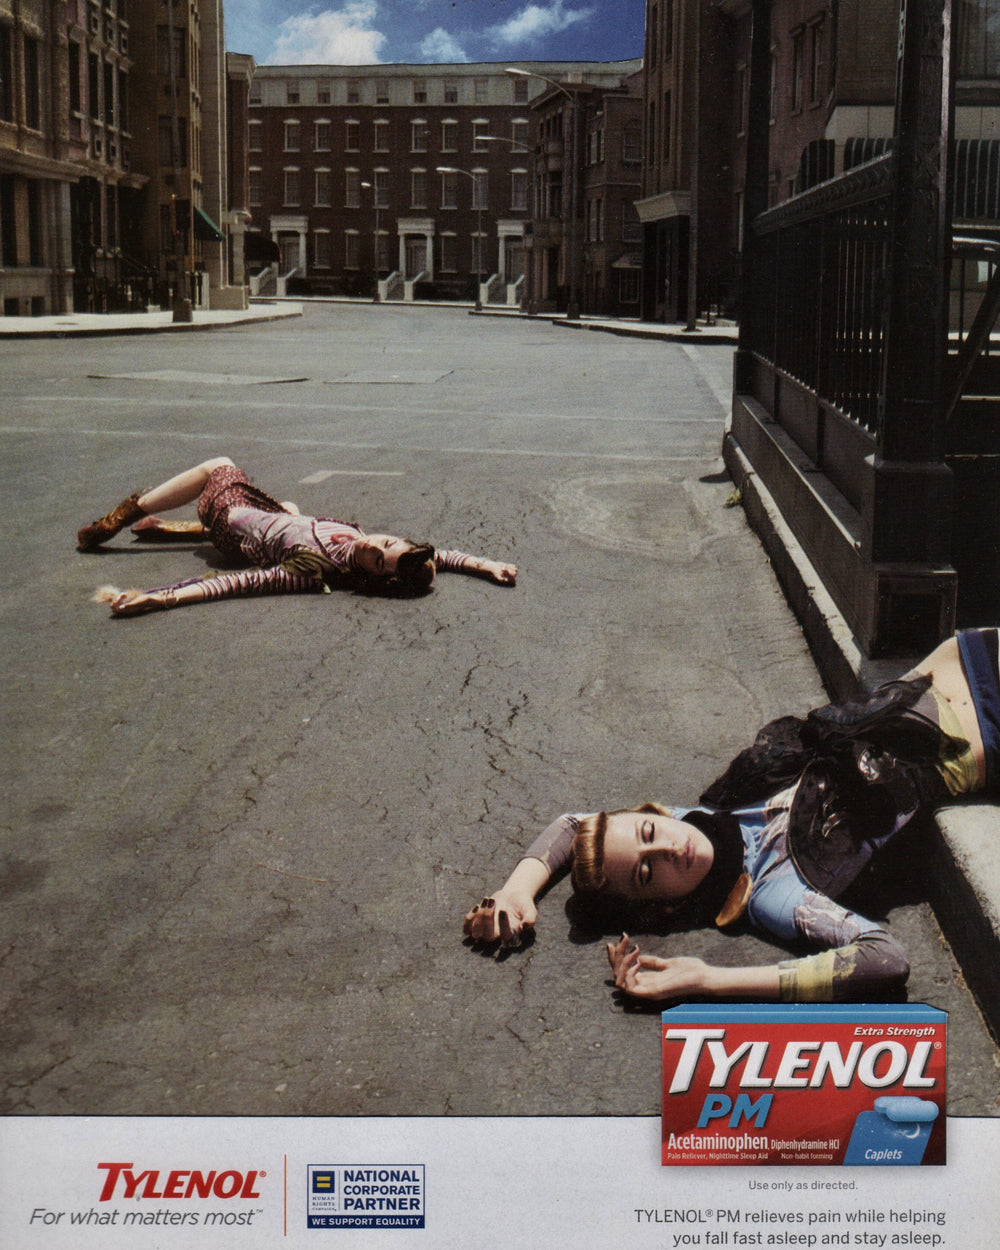 Two people lying in the street with buildings behind.